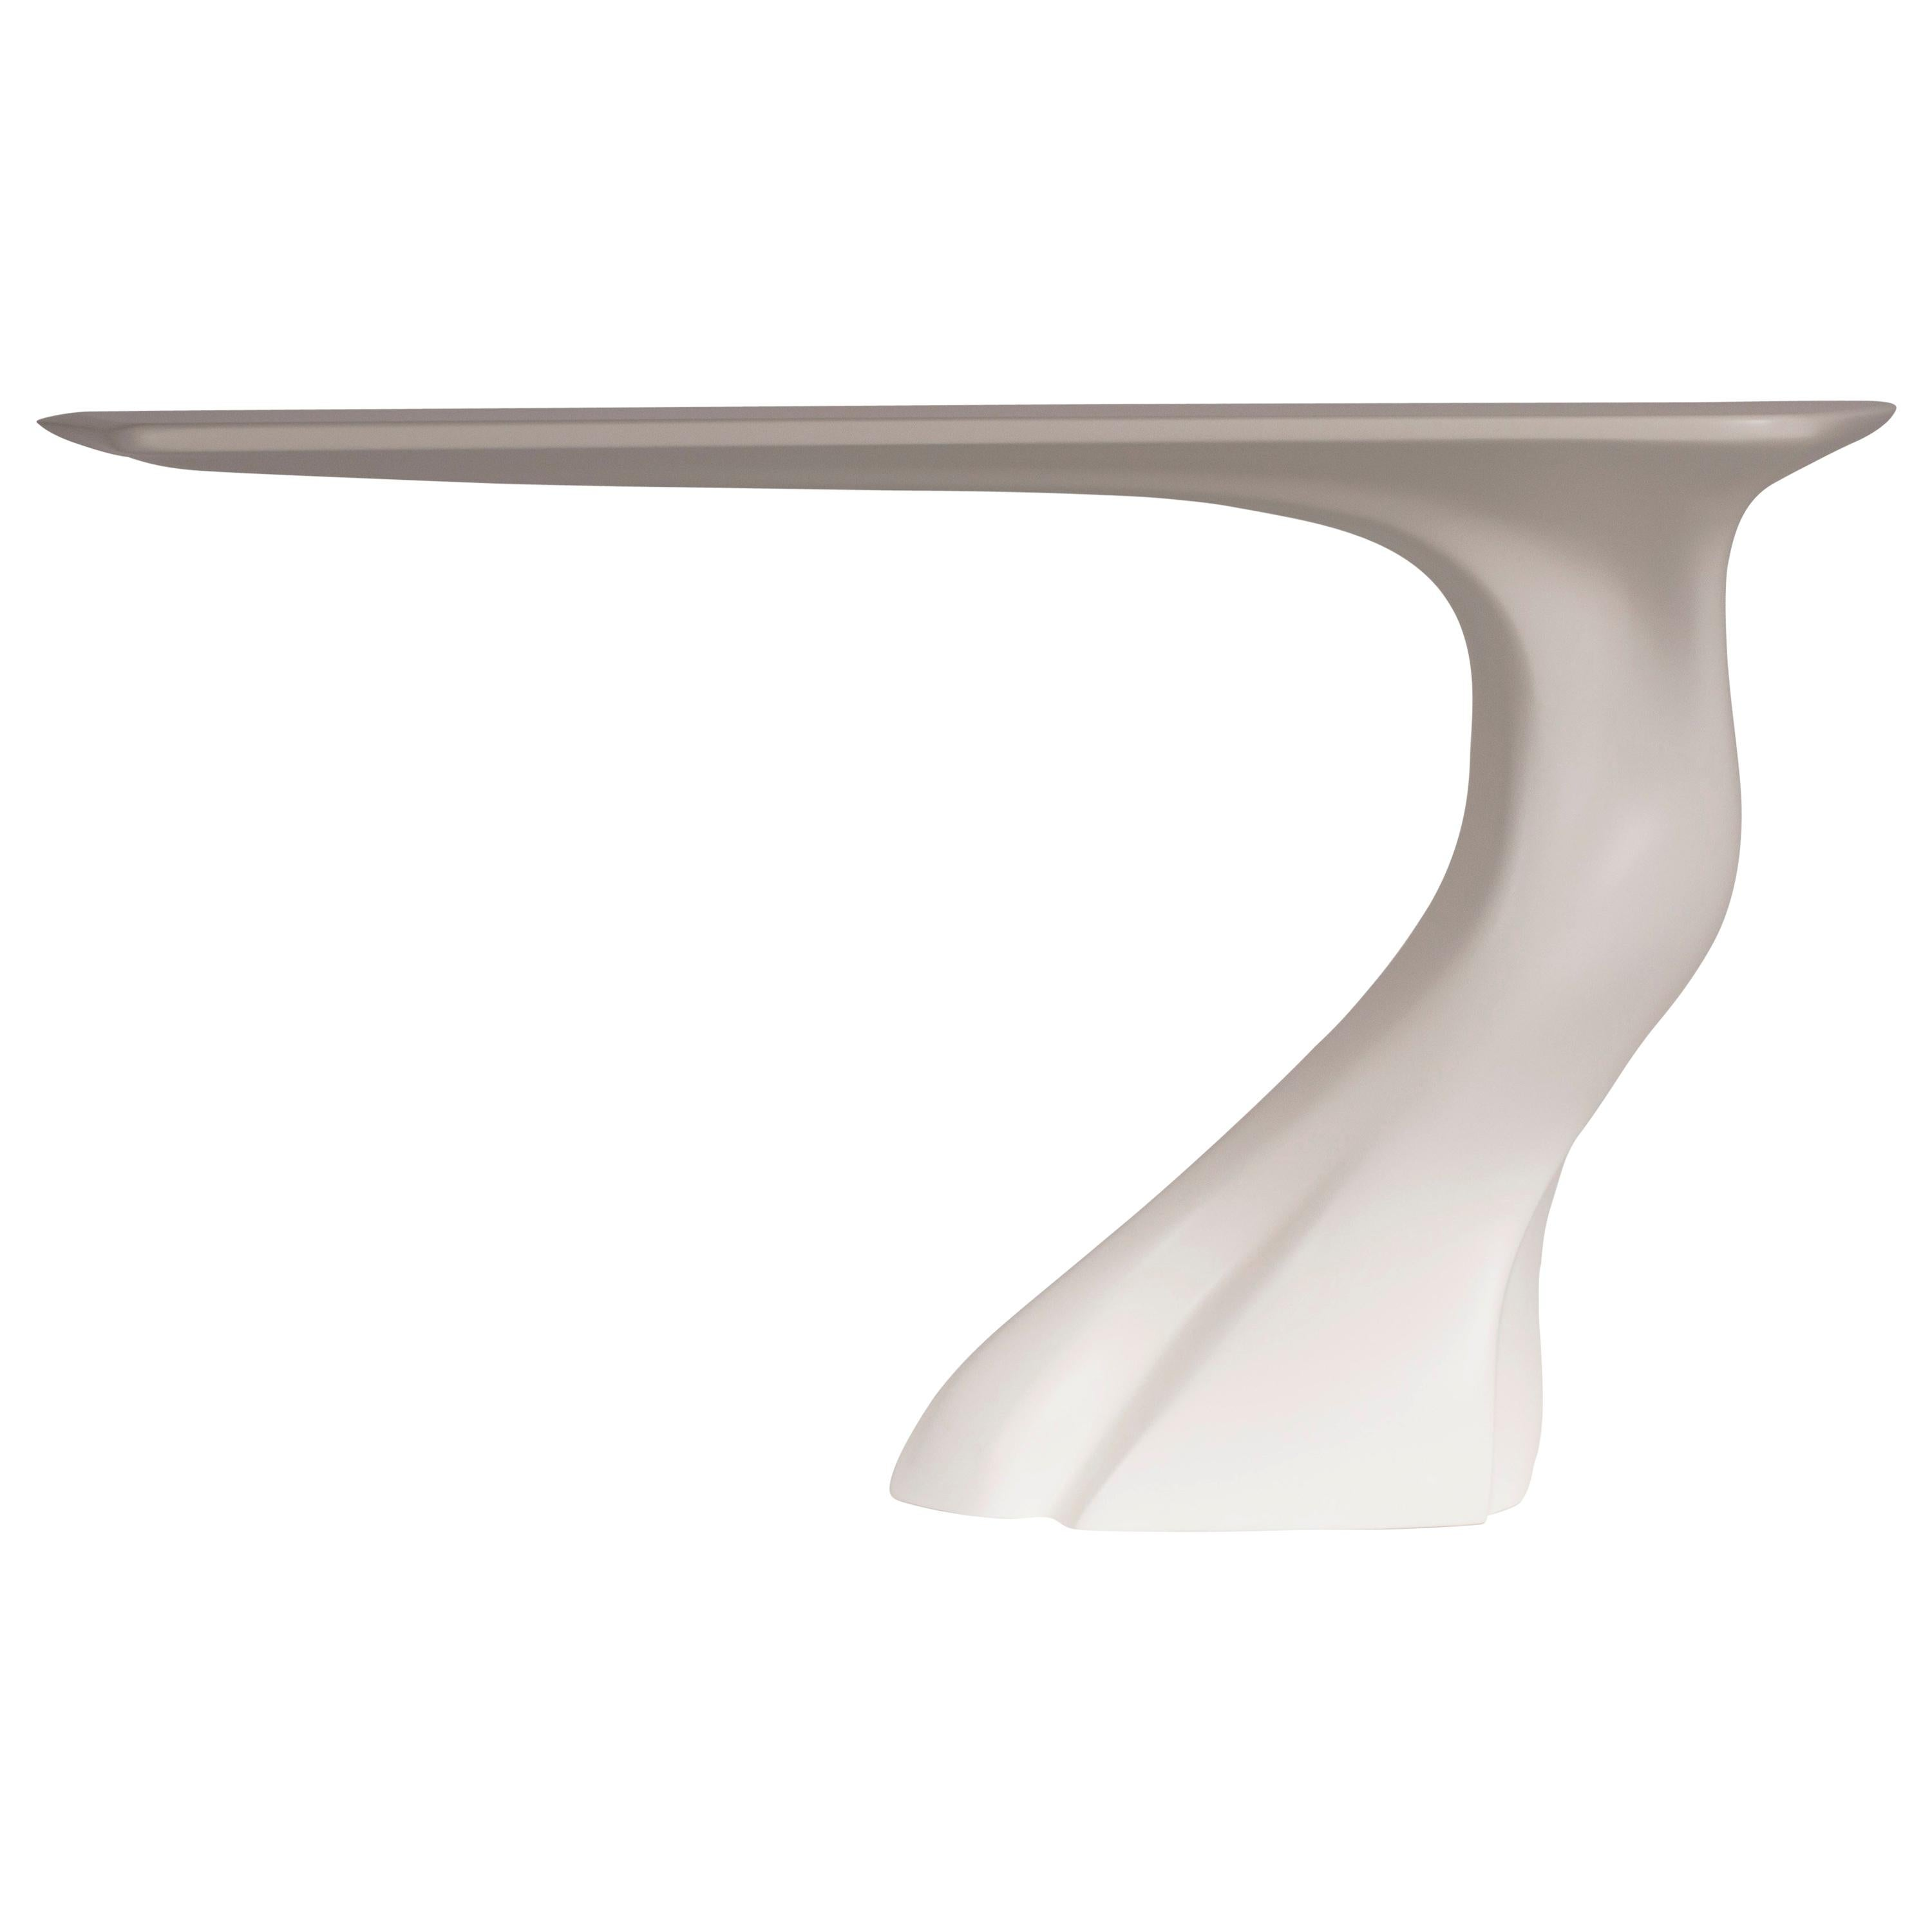 Amorph Frolic Console Table, Wall-Mounted, White Matte